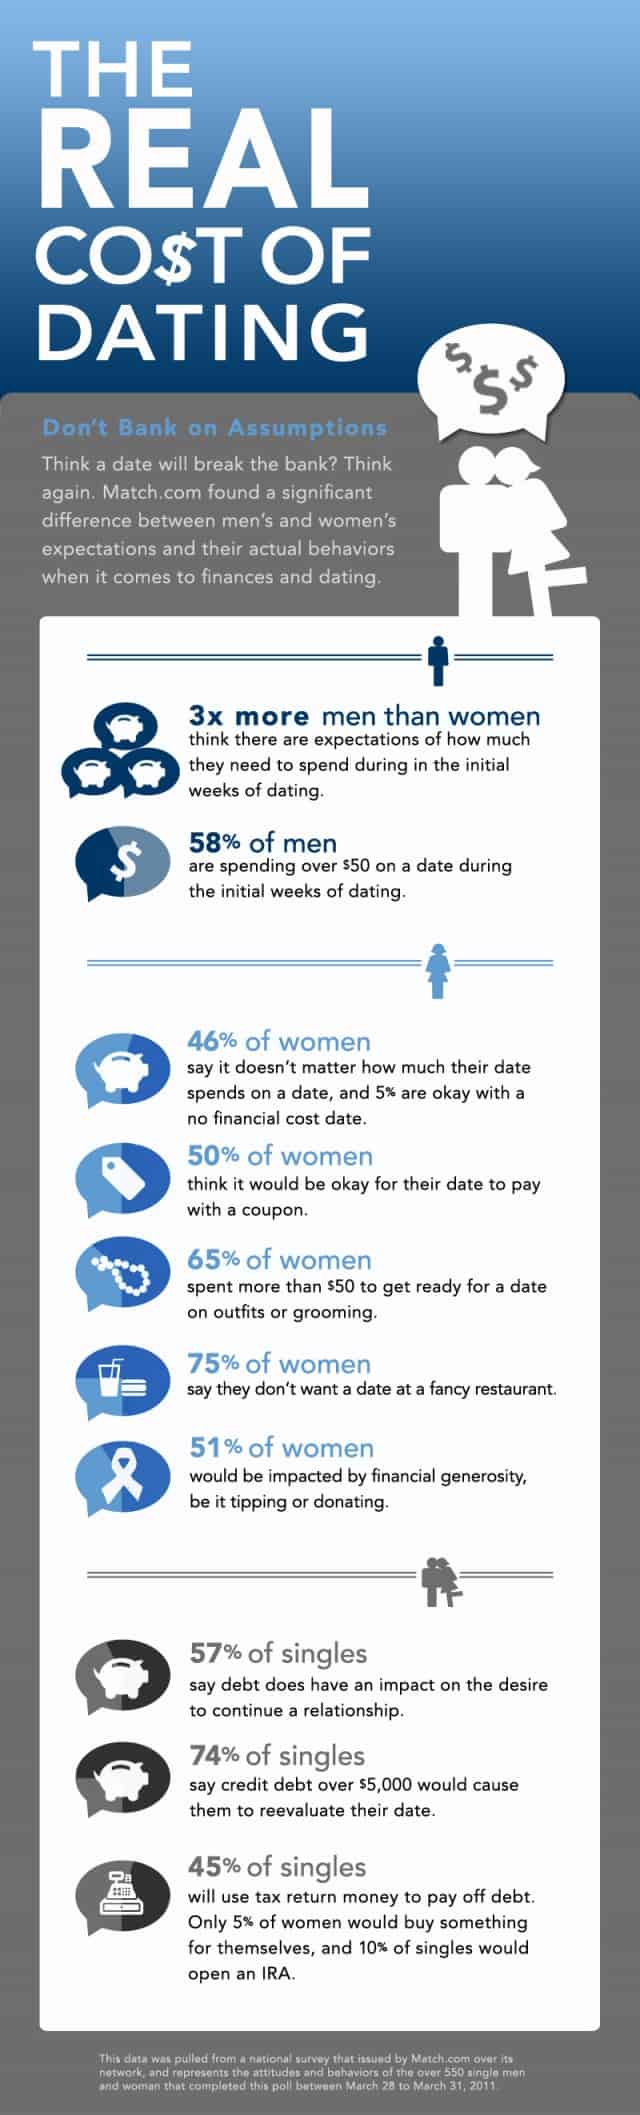 Real Cost of Dating Infographic